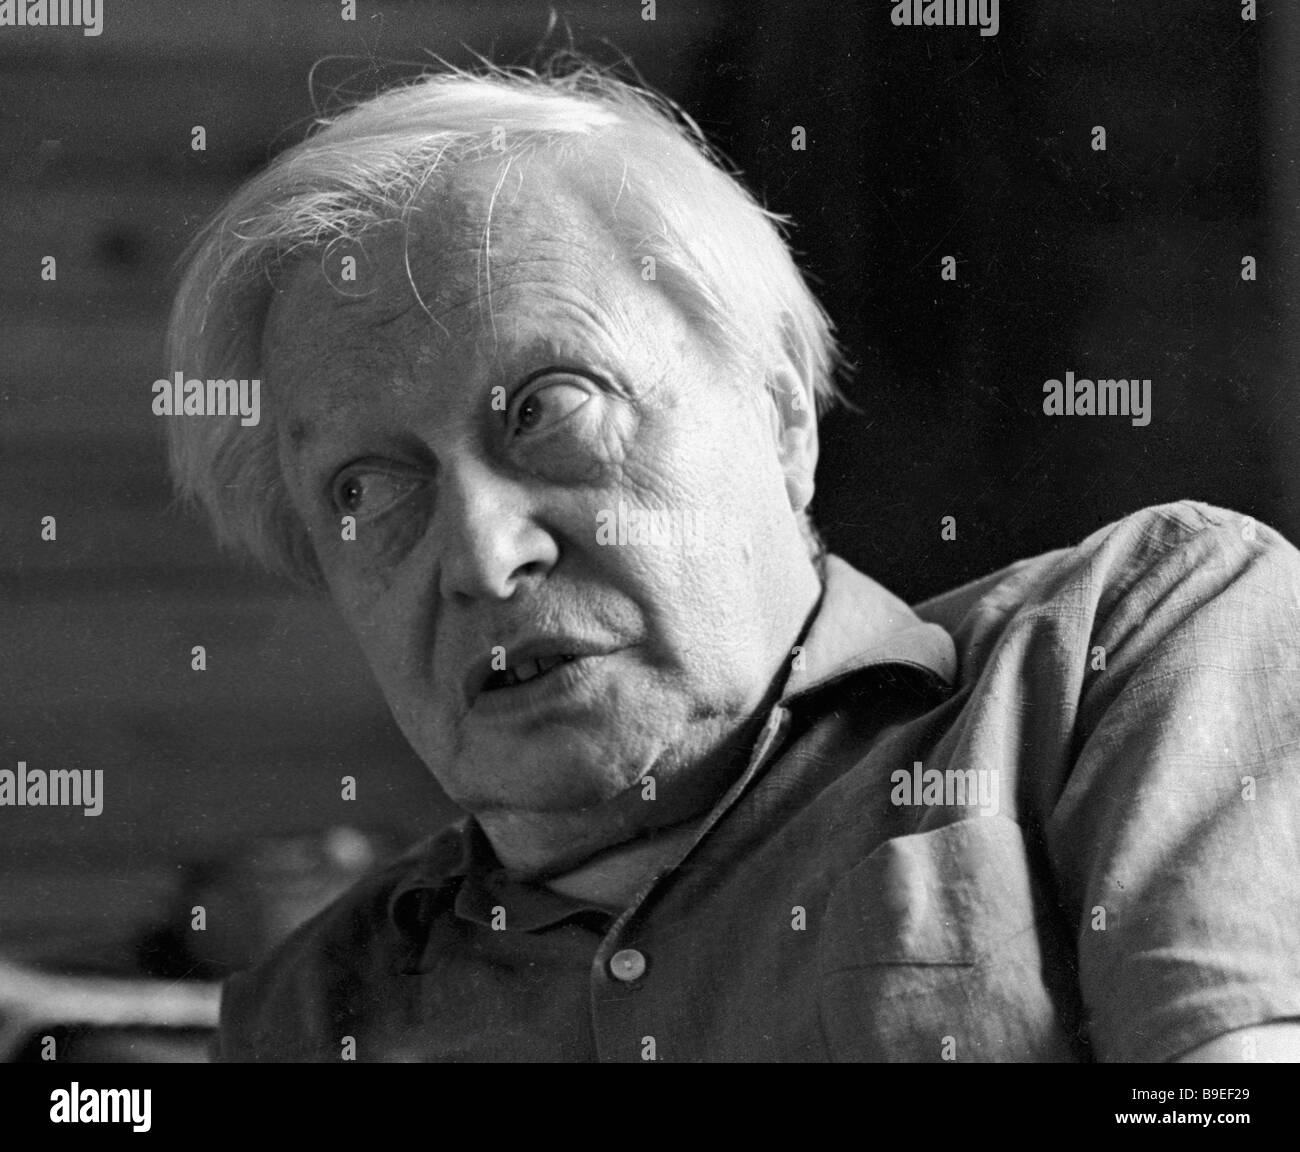 USSR People s Artist Sergei Obraztsov the director of the Central Puppet Theater - Stock Image